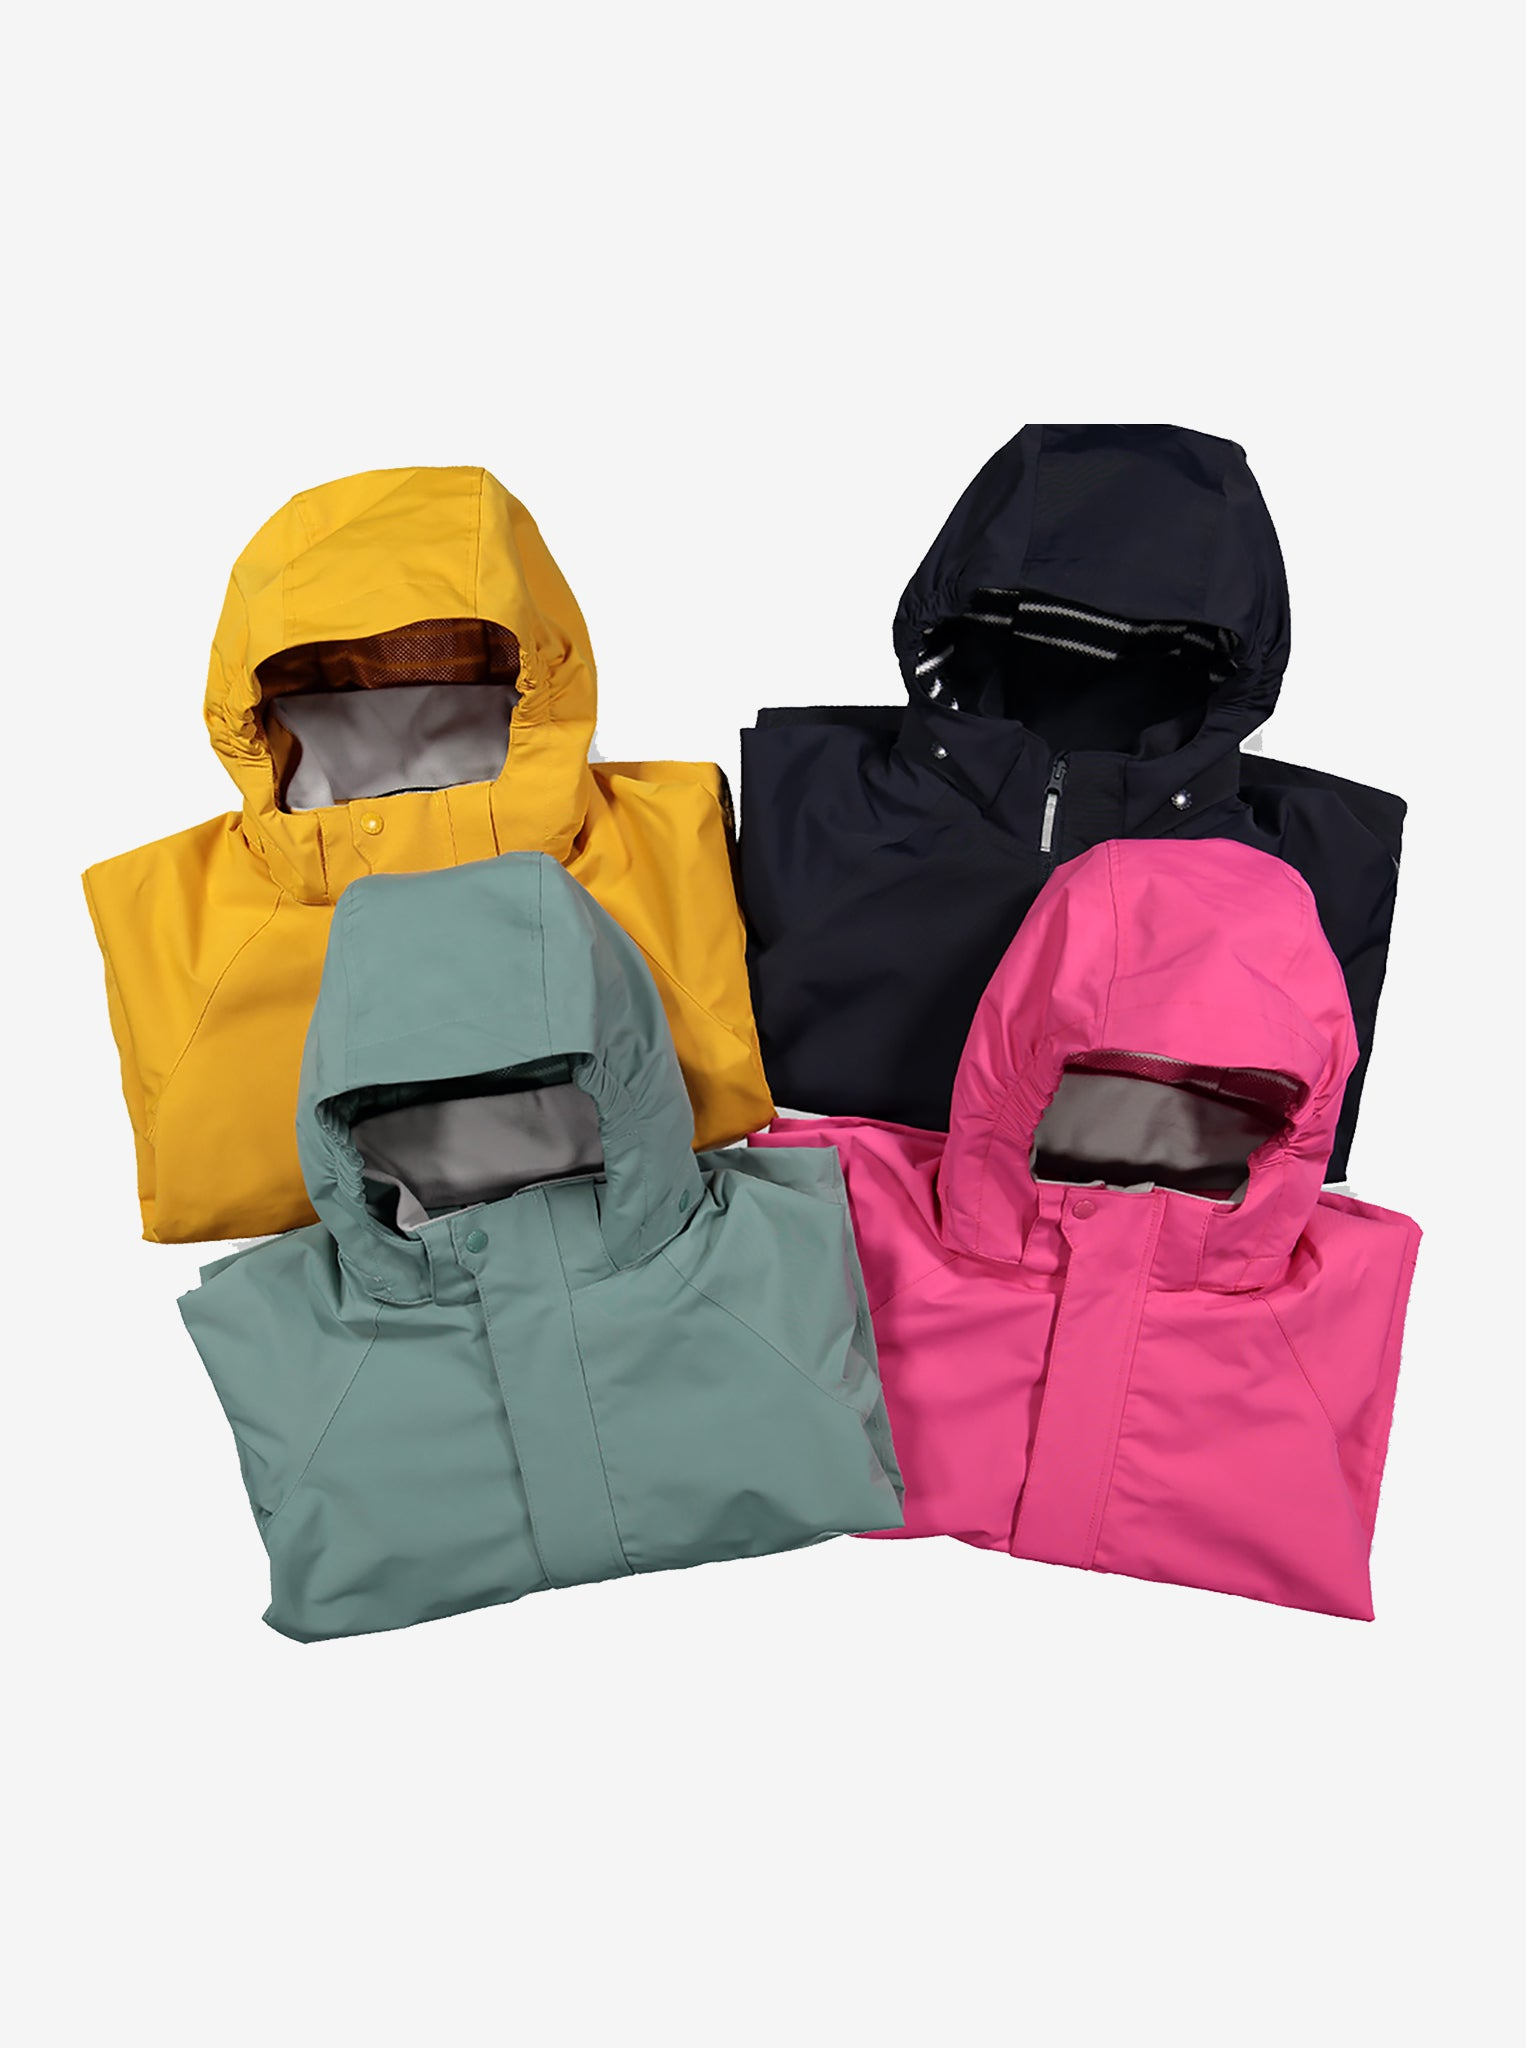 Four kids waterproof shell jackets, comes in the colours yellow, navy, green, and pink, made of lightweight fabric.